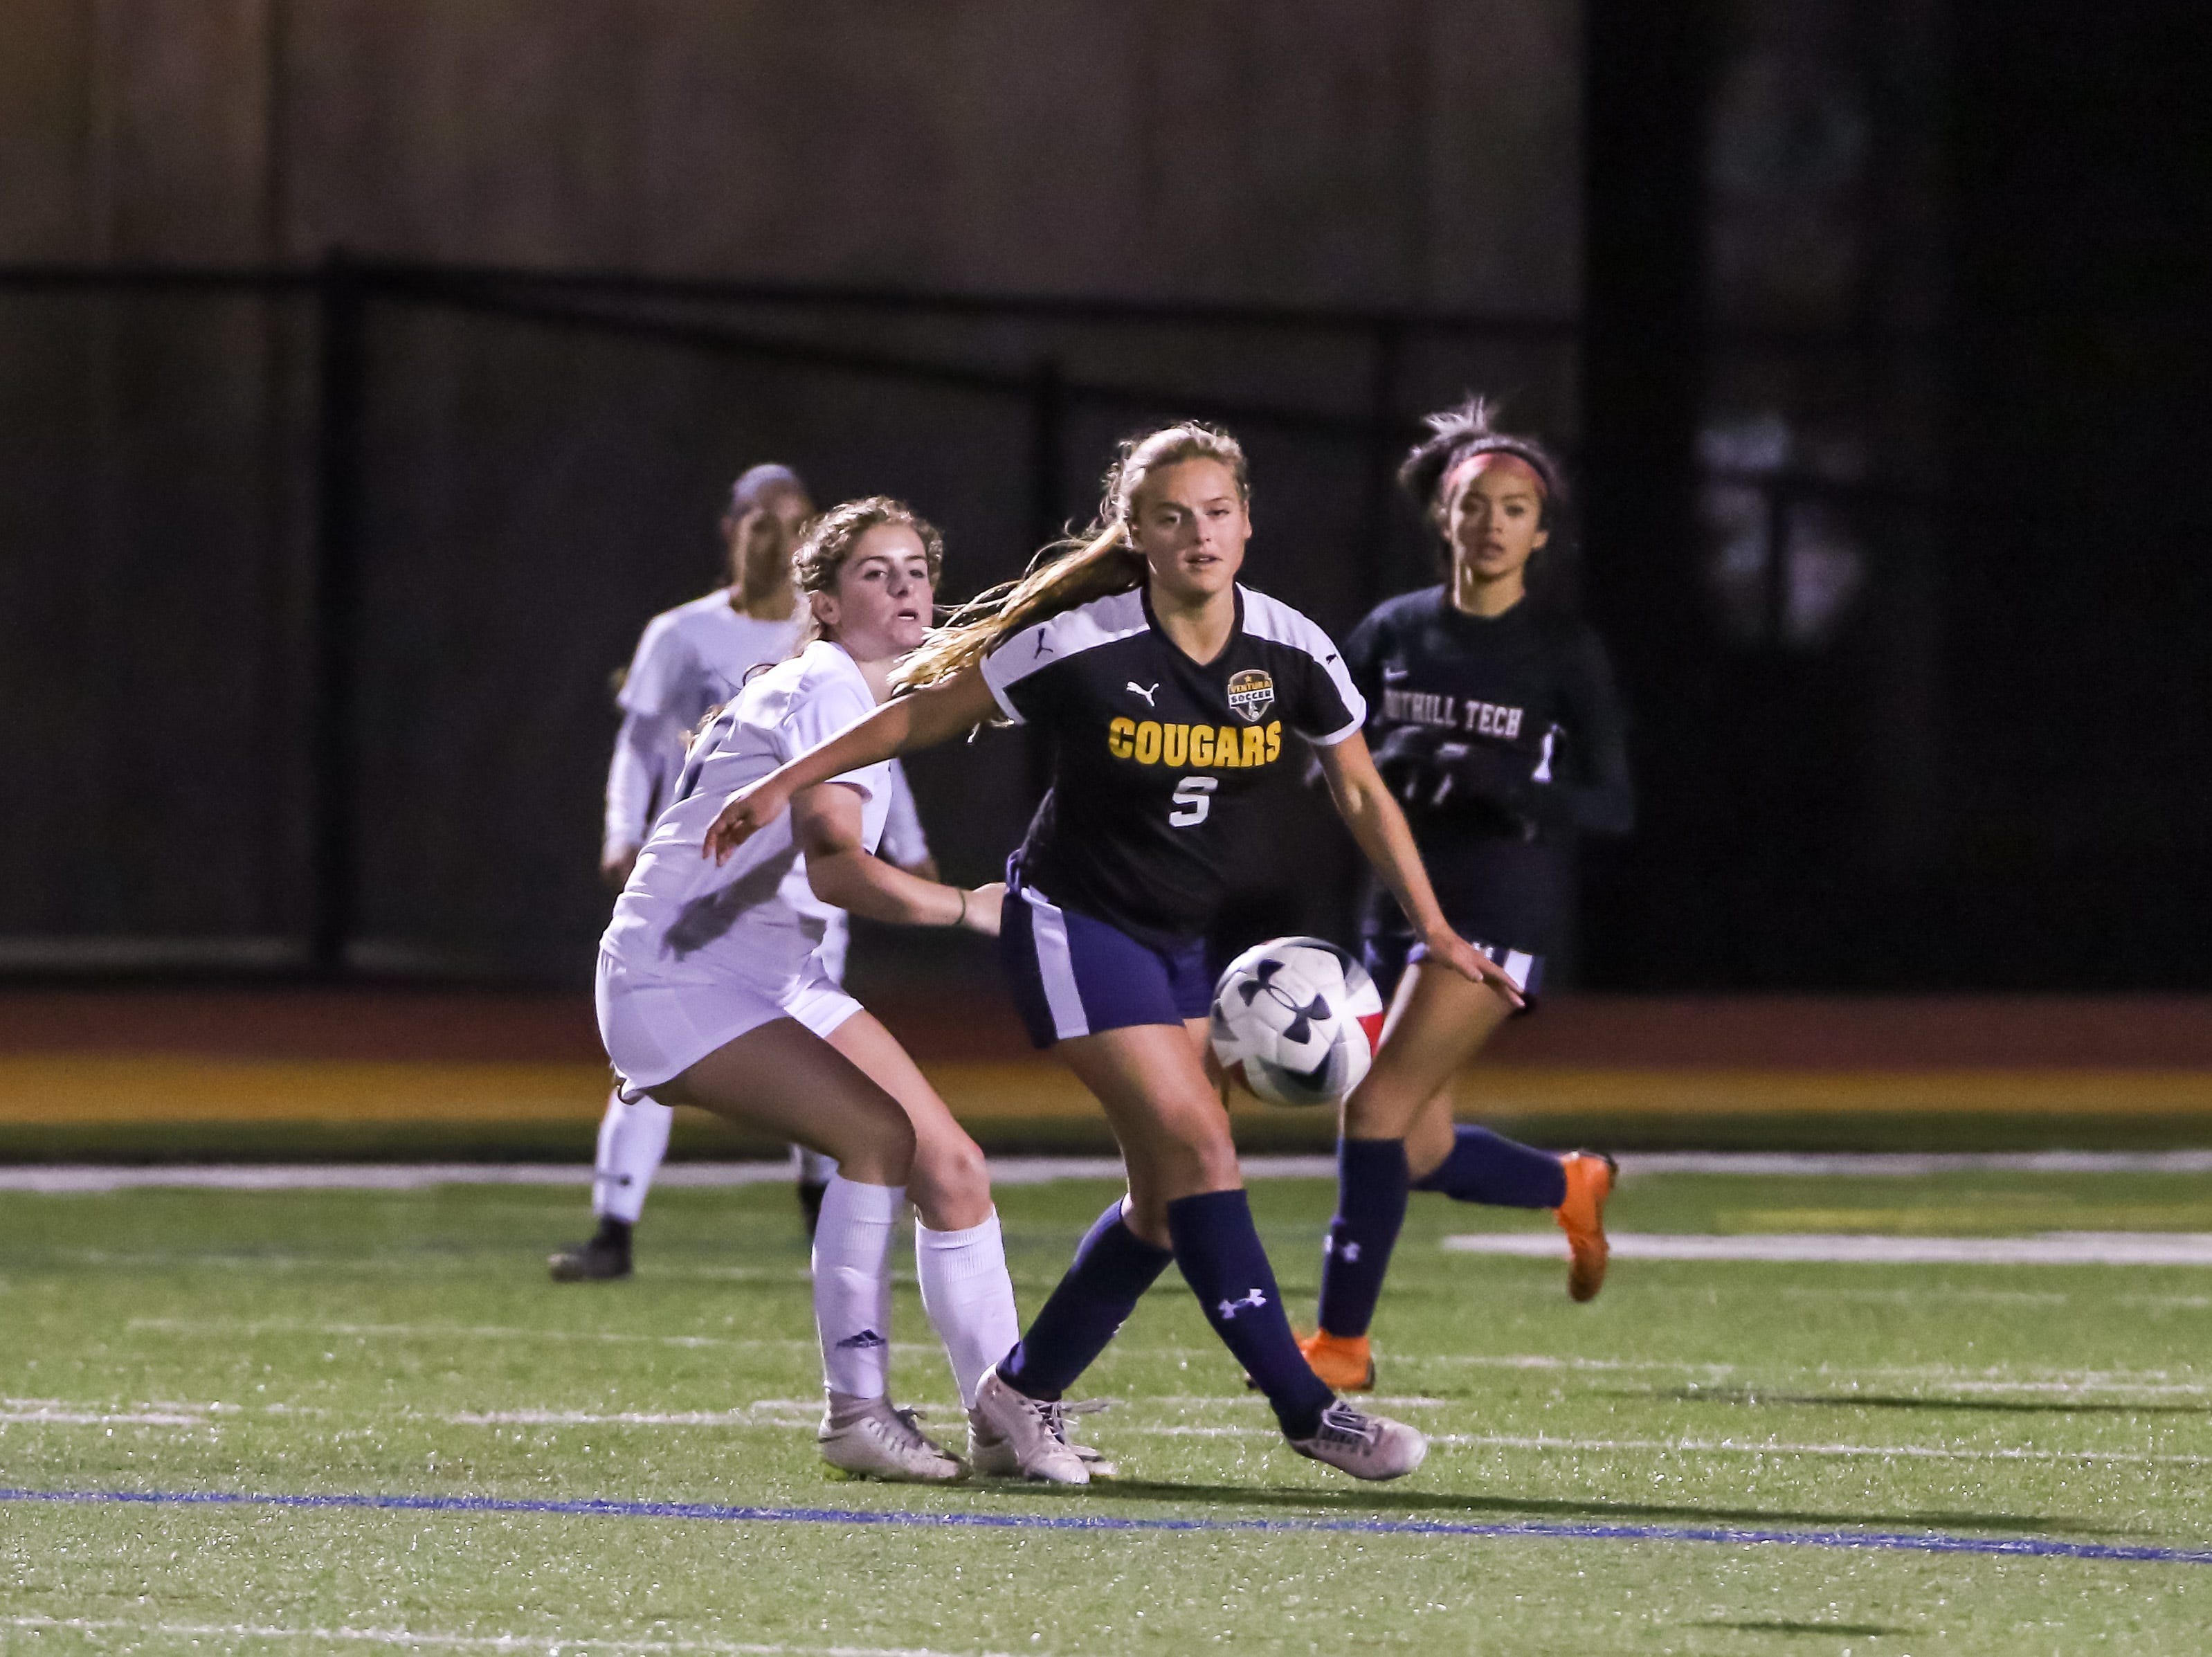 Ventura's Elieah Boyd looks upfield for a teammate on Friday night during the Ventura County versus Los Angeles County Senior Girls Soccer All-Star game at Oaks Christian's Thorson Stadium. Ventura County won, 1-0.